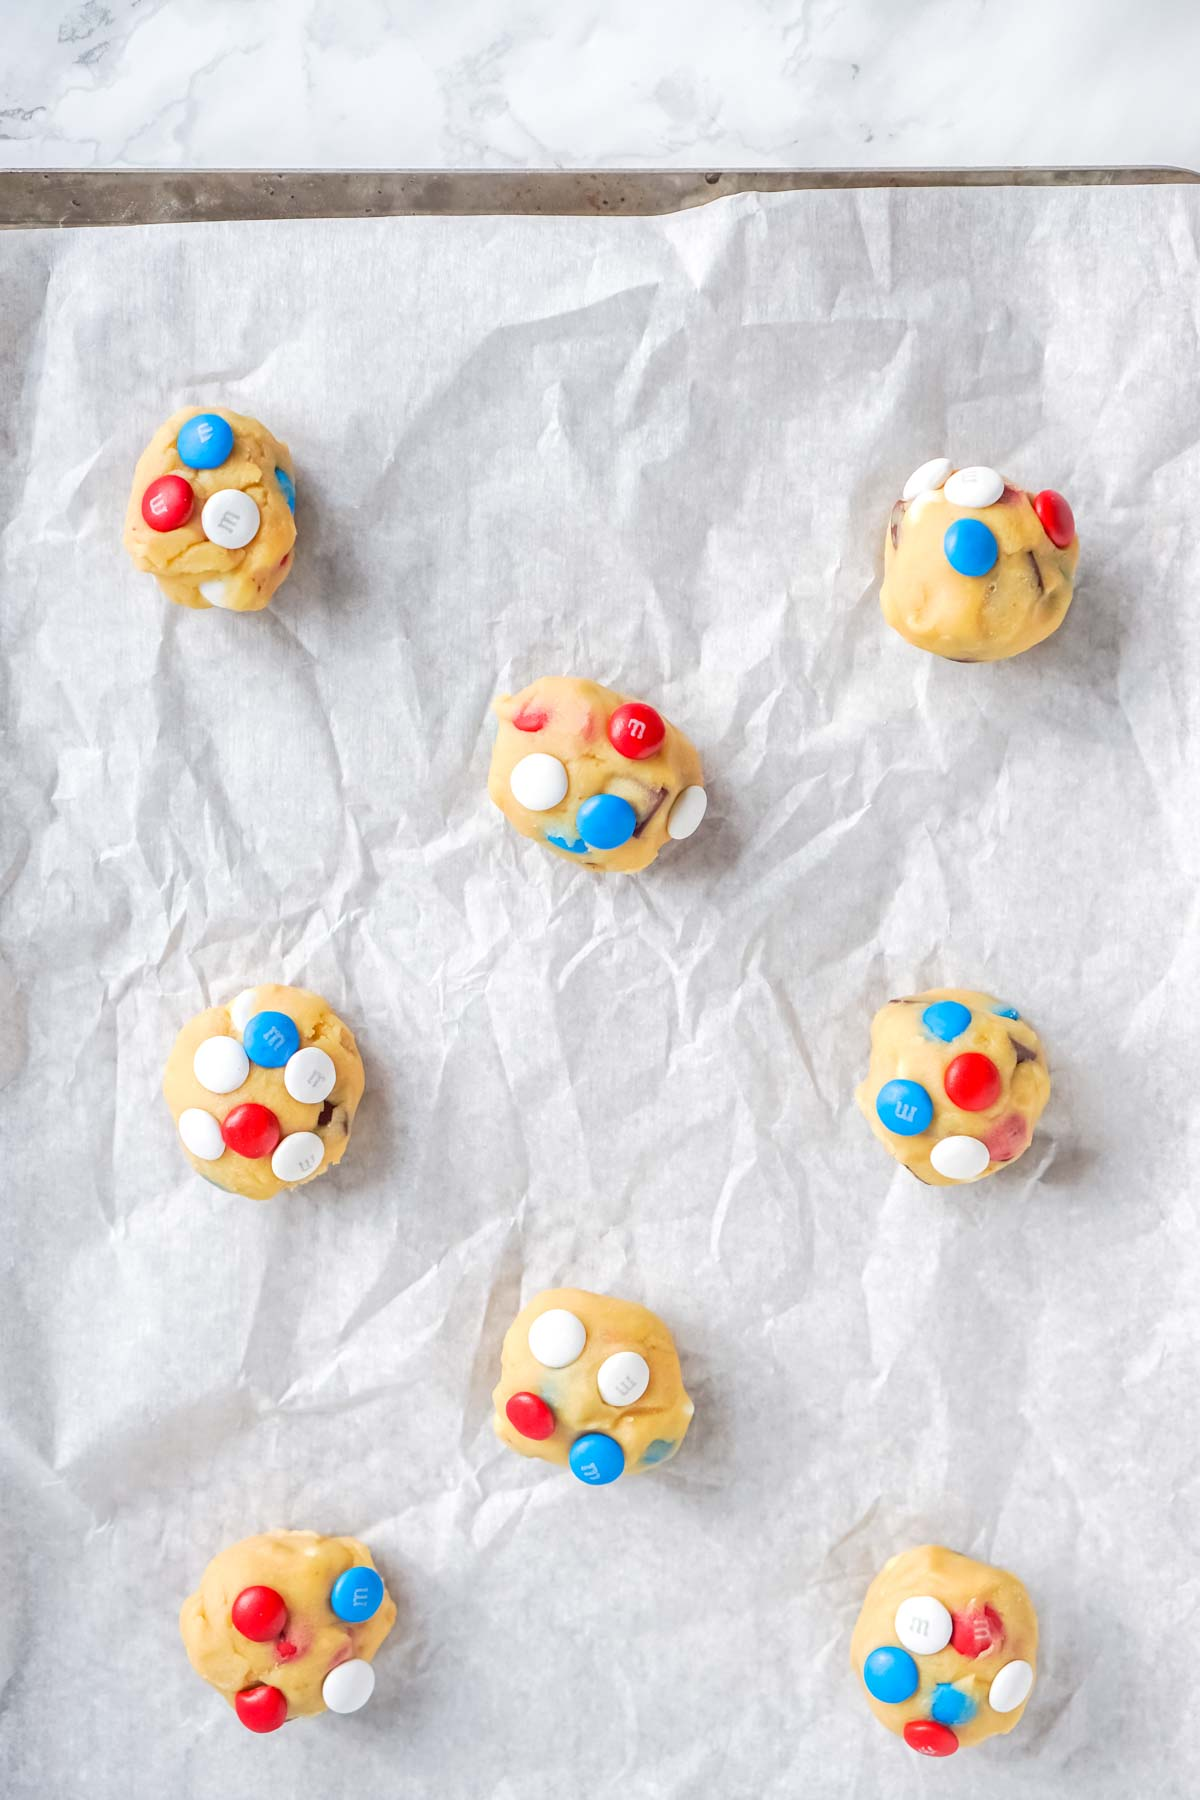 unbaked chocolate chip M&M cookies on a baking sheet